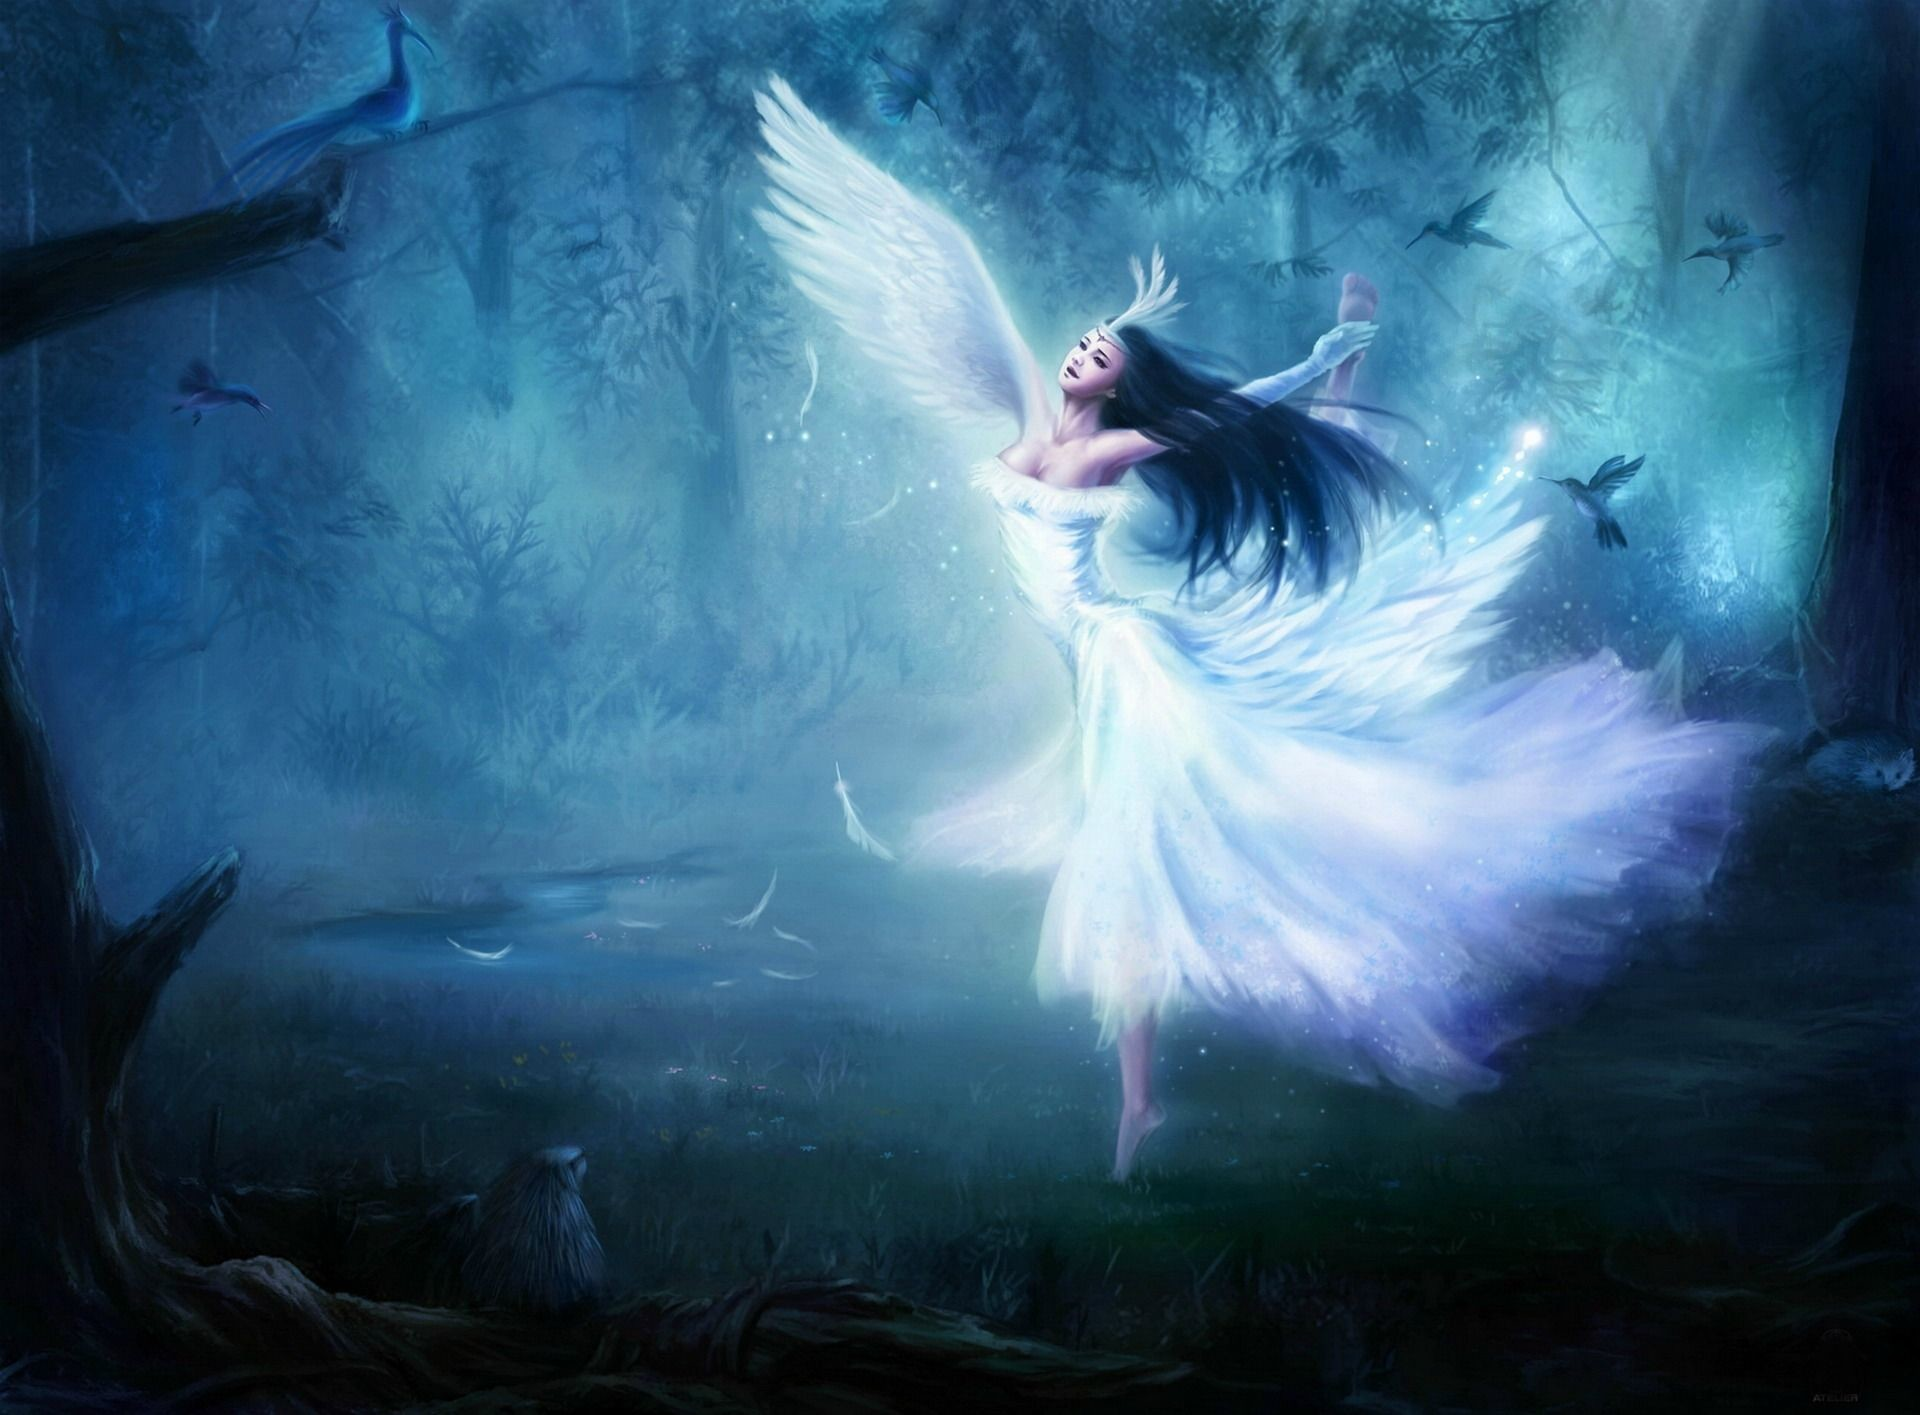 Fantasy fairies wallpapers 62 images 1920x1415 fairies wallpaper backgrounds wallpaper cave thecheapjerseys Images